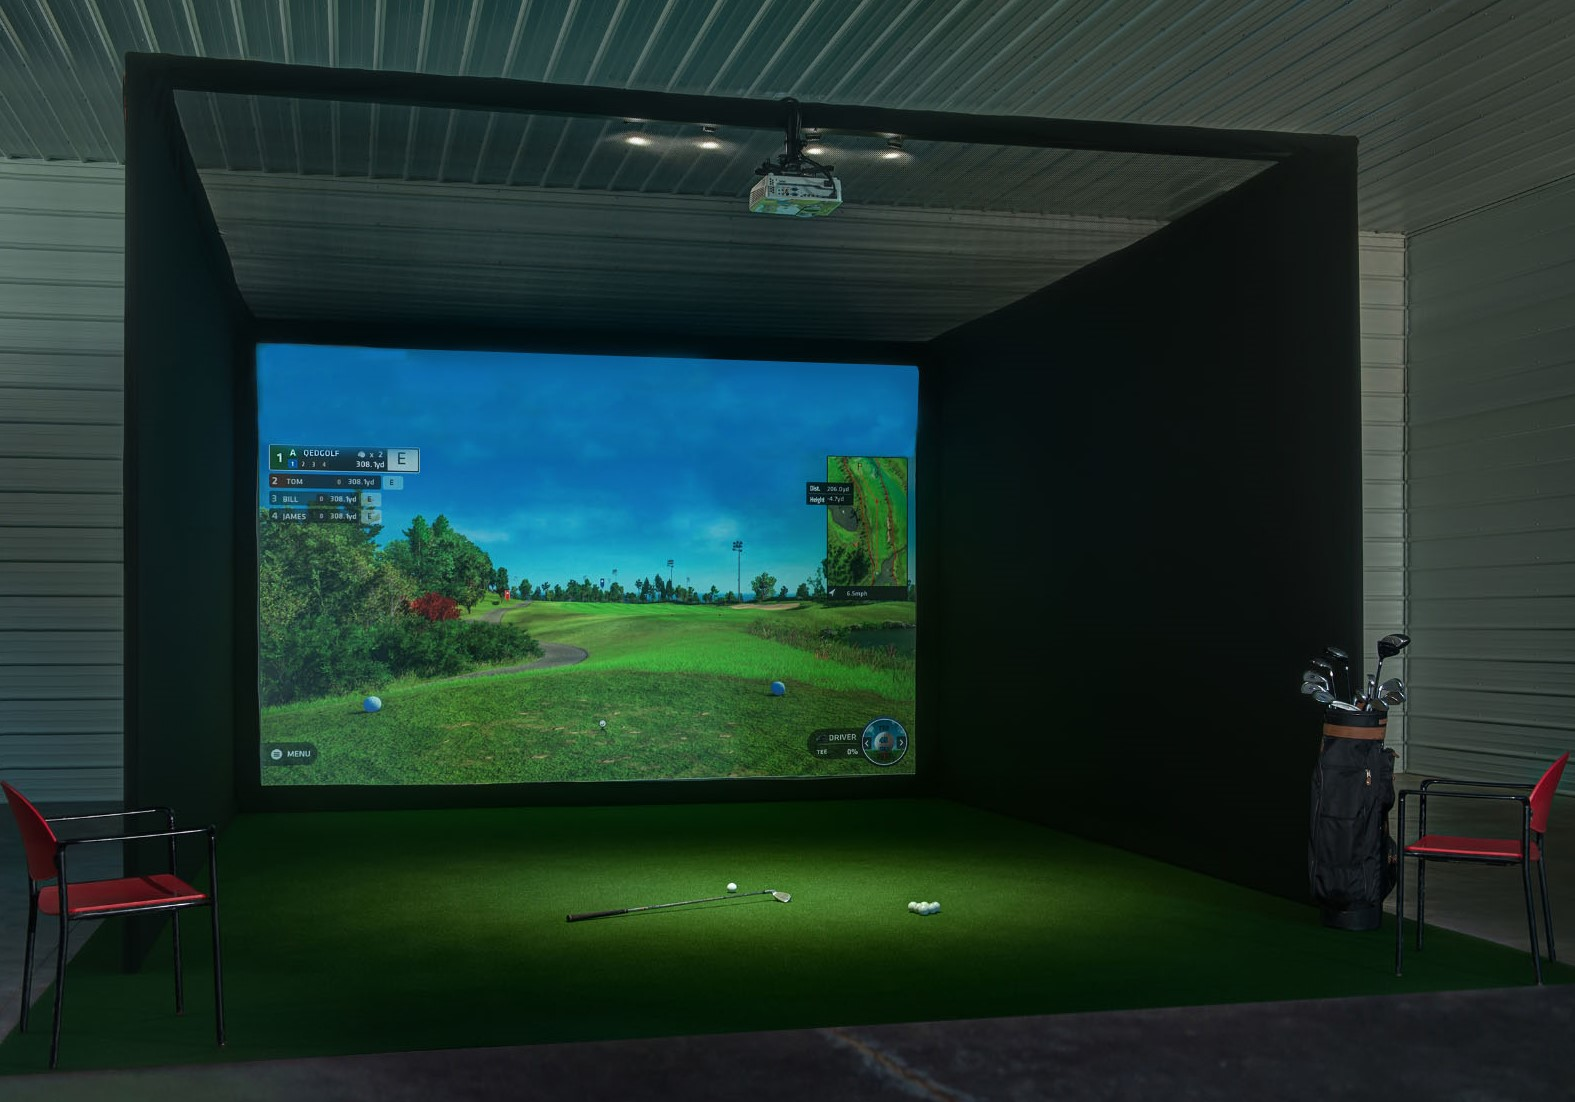 Home Golf Simulators